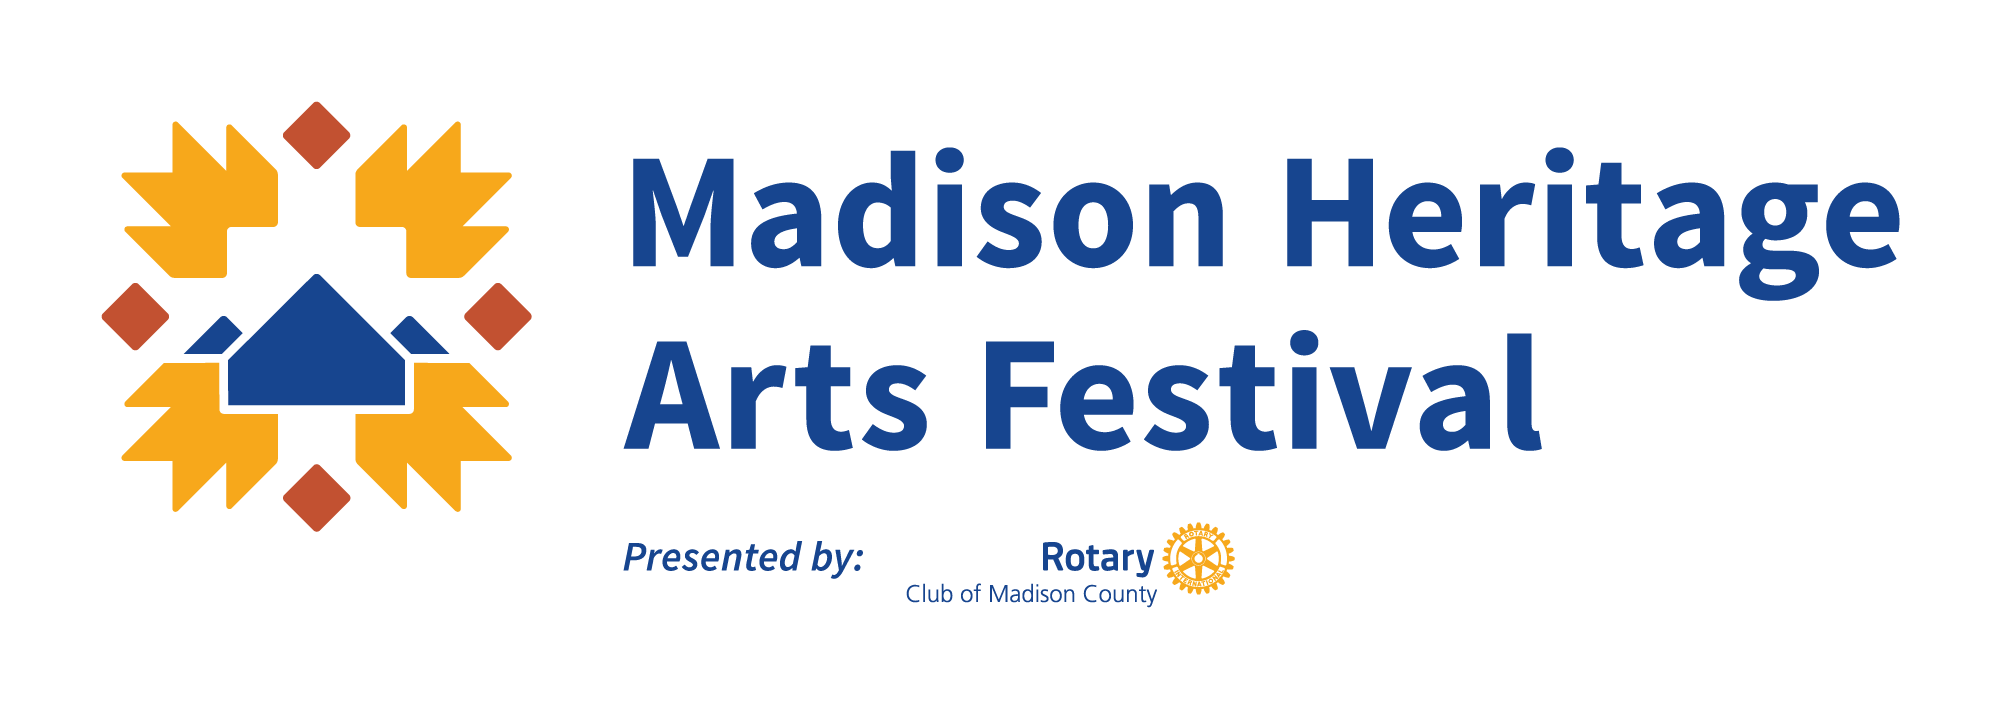 Madison Heritage Arts Festival